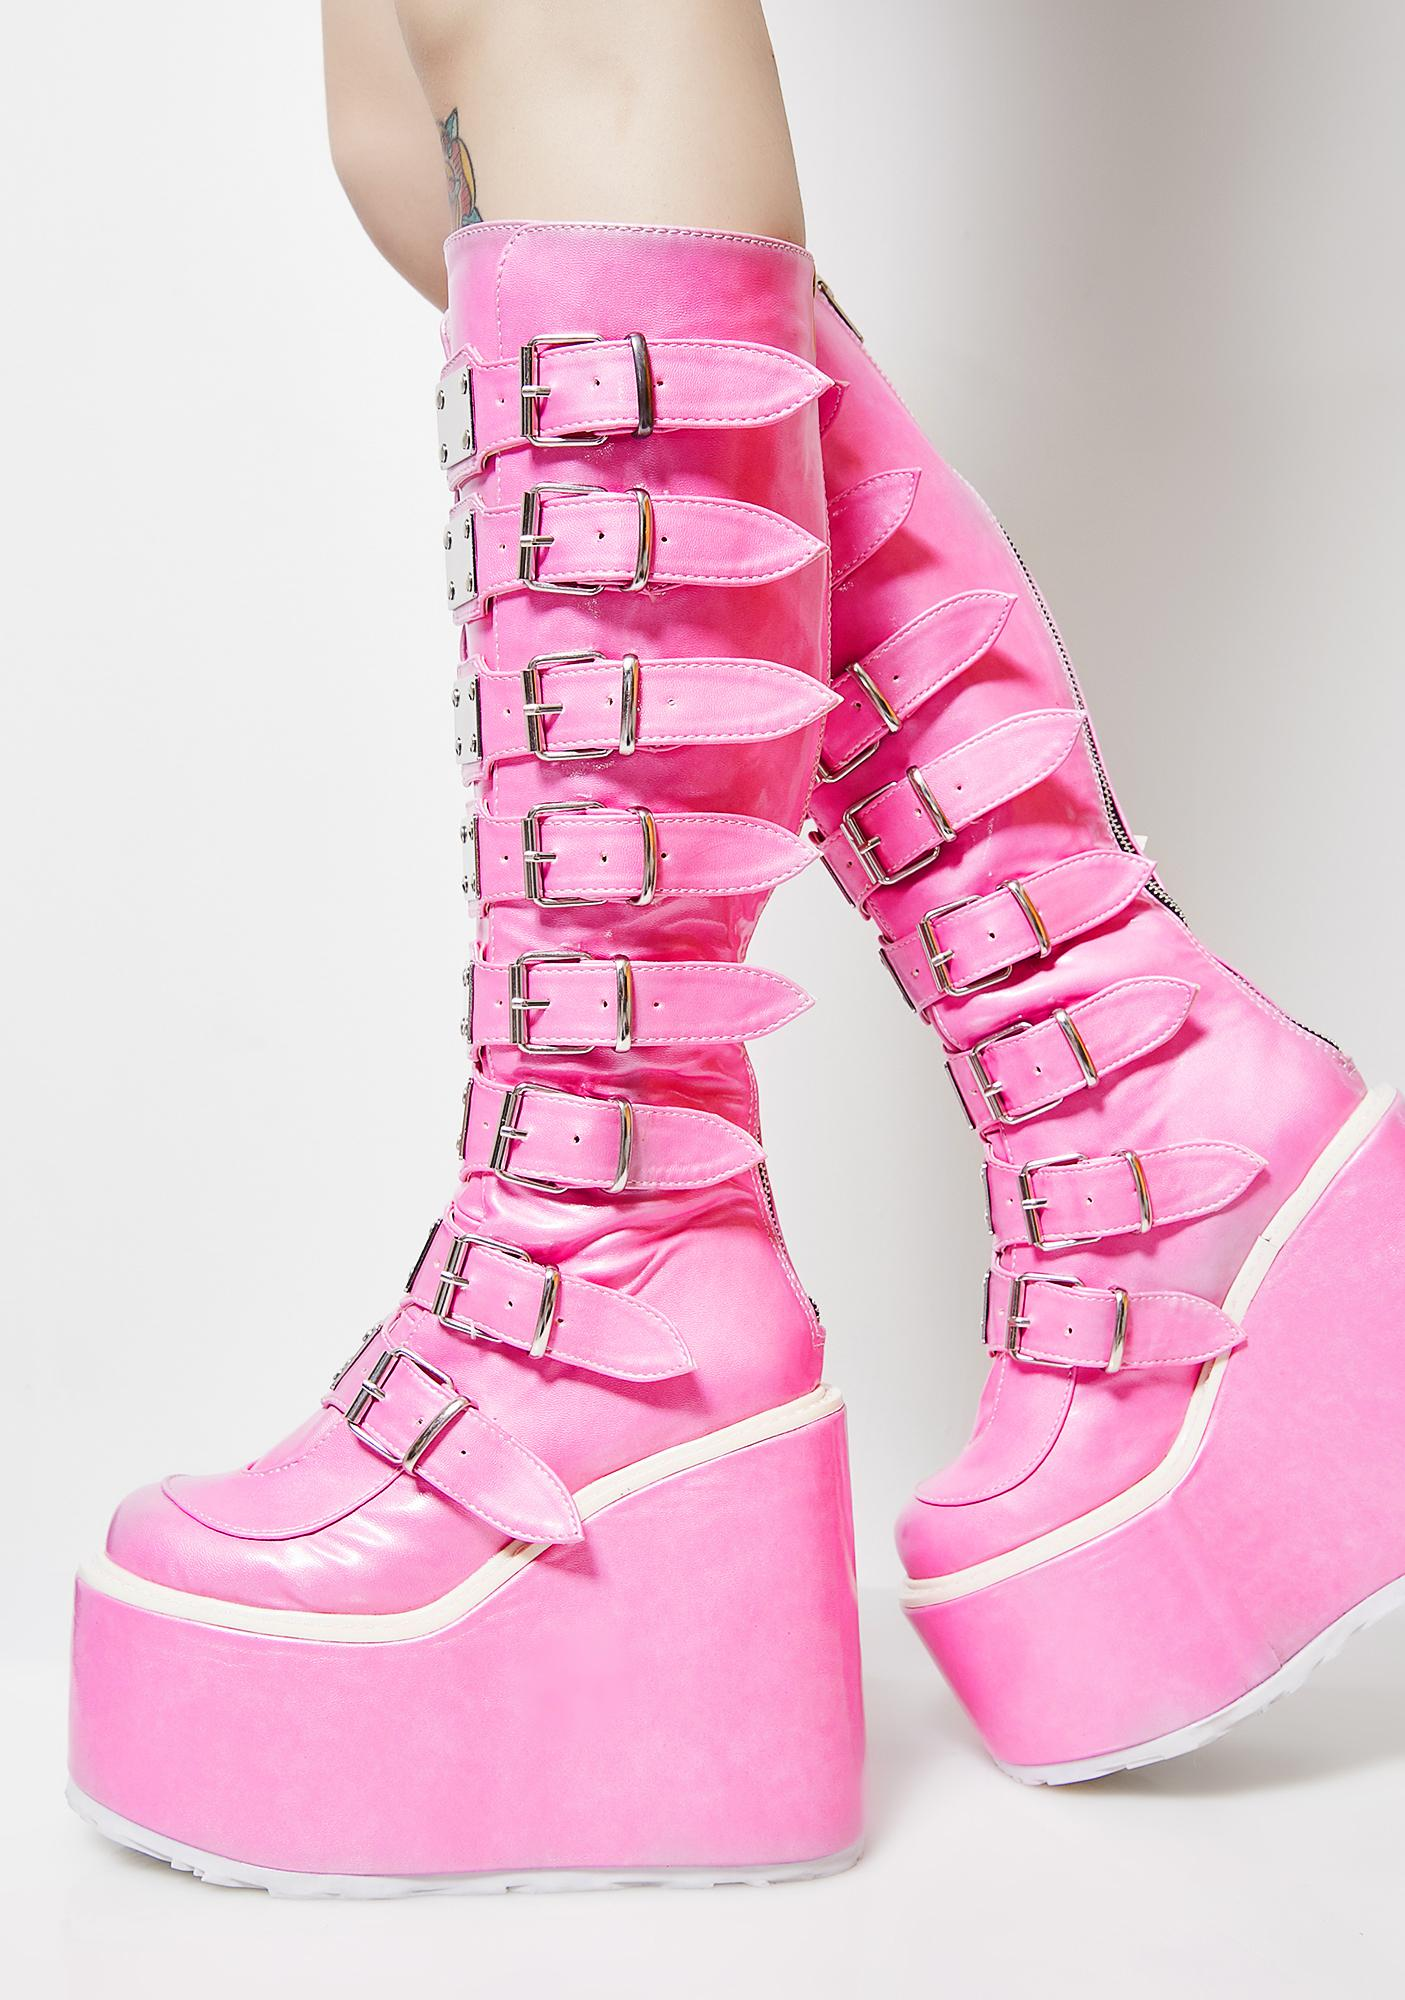 Demonia Sweeter Than Eva Trinity Boots